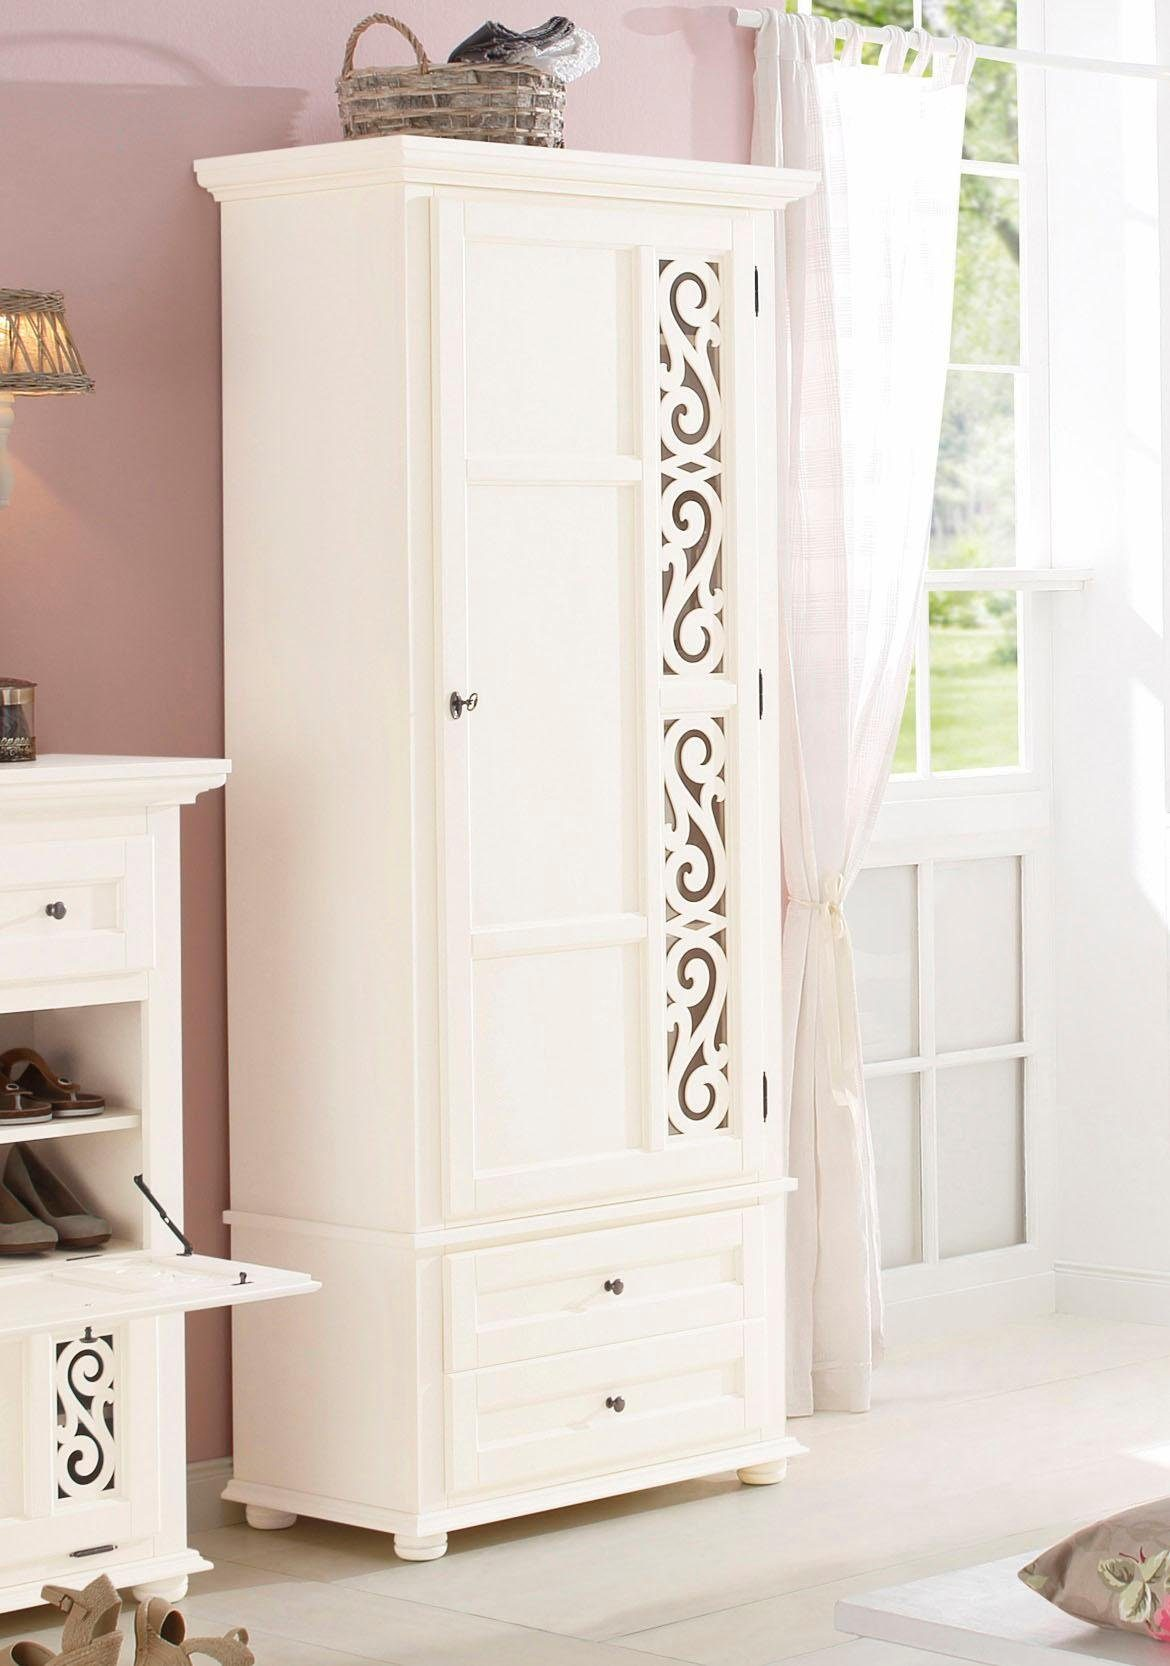 Premium collection by Home affaire Garderobenschrank »Arabeske«